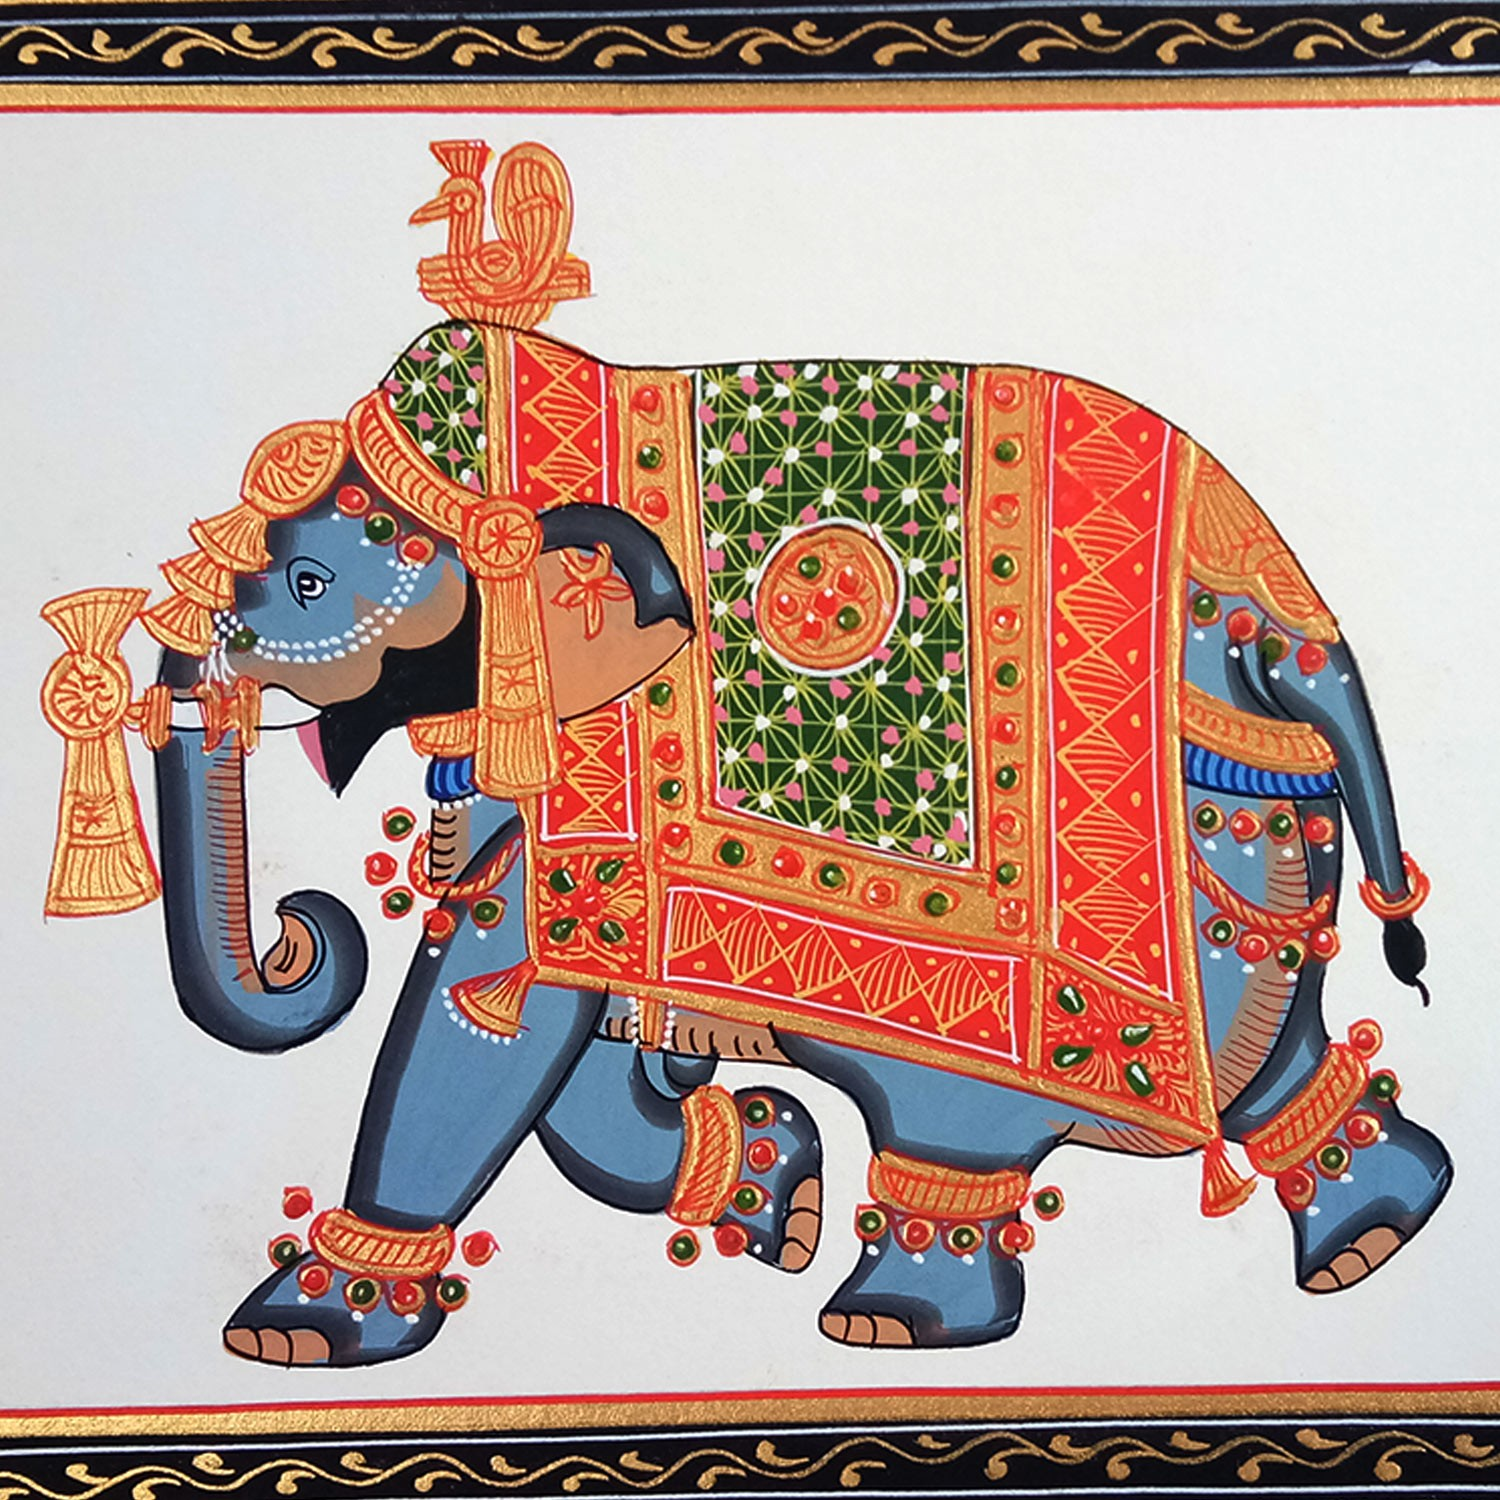 Multicolored (Natural Stone Color) Miniature Painting on Silk of Decorated Elephant by Rajasthani Artist